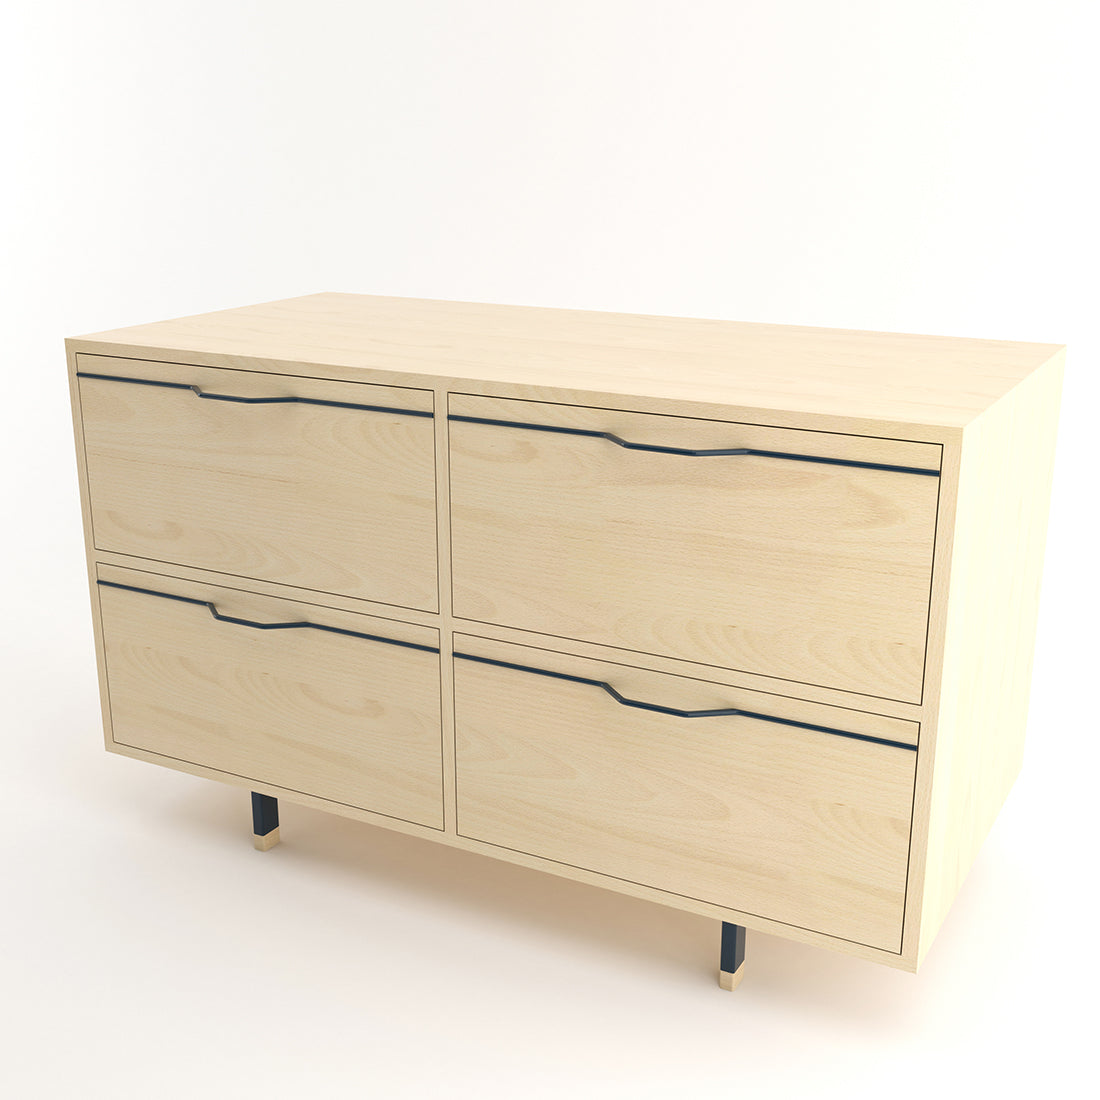 Chapman Maple Double Unit Storage Cabinet w/ Drawers